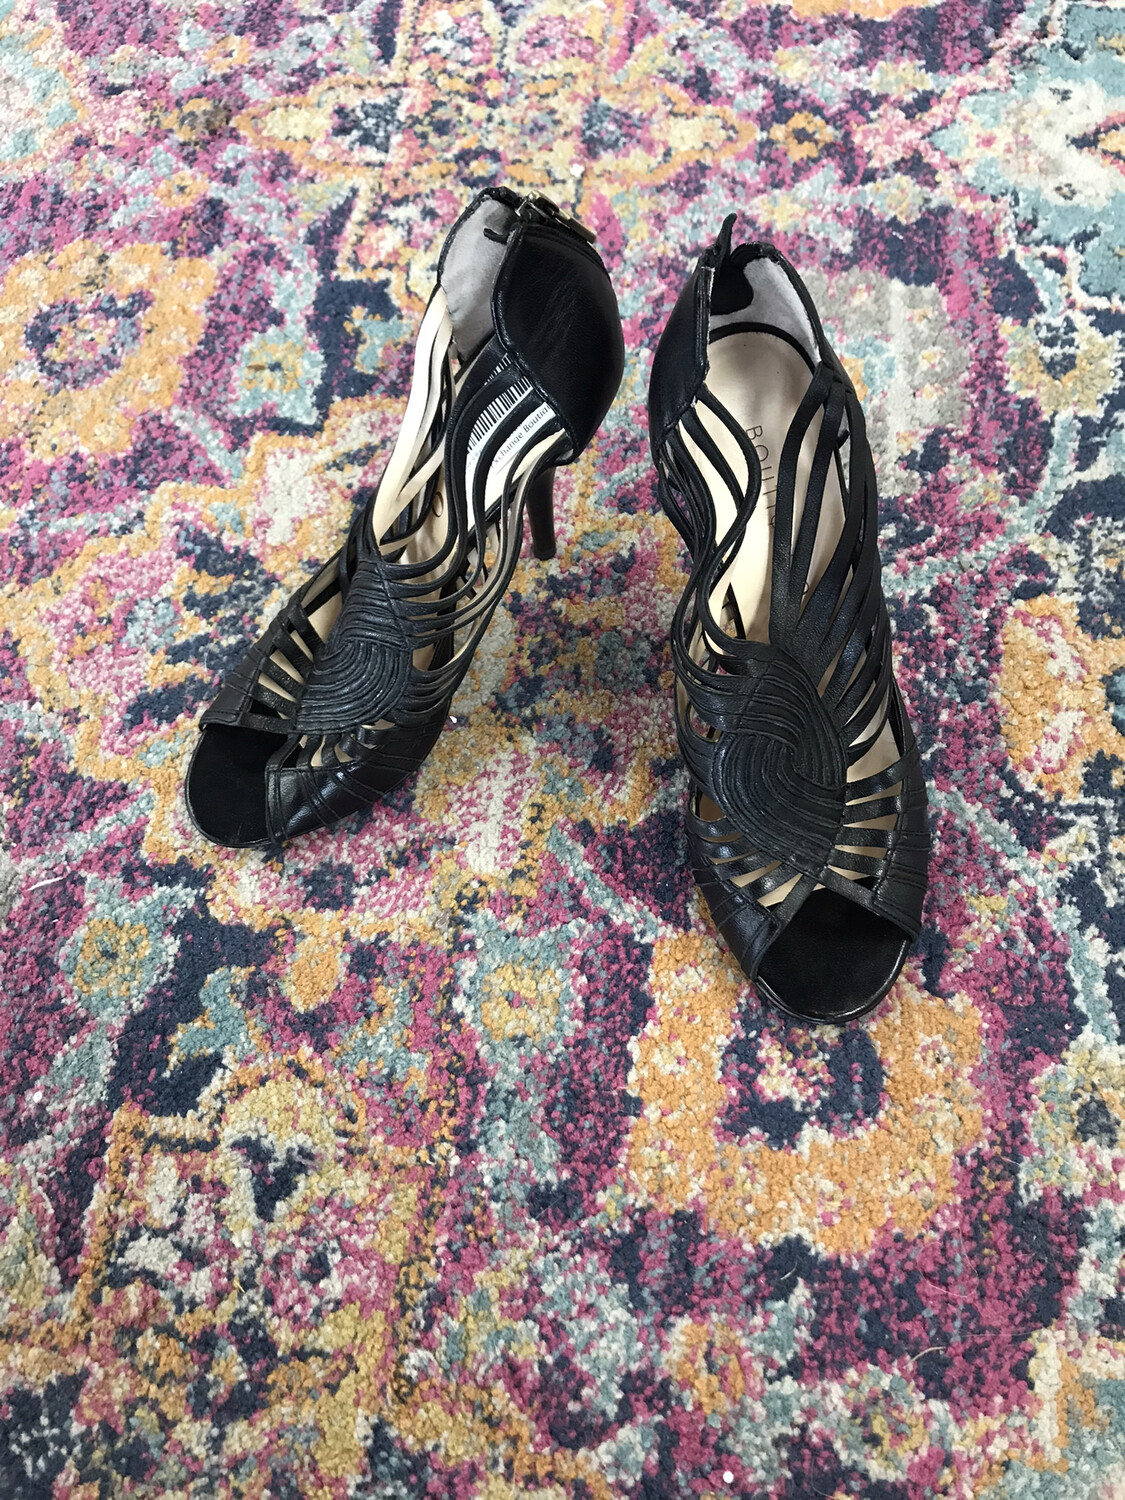 Boutique 9 Black Heels with Strappy Detail - Size 8.5